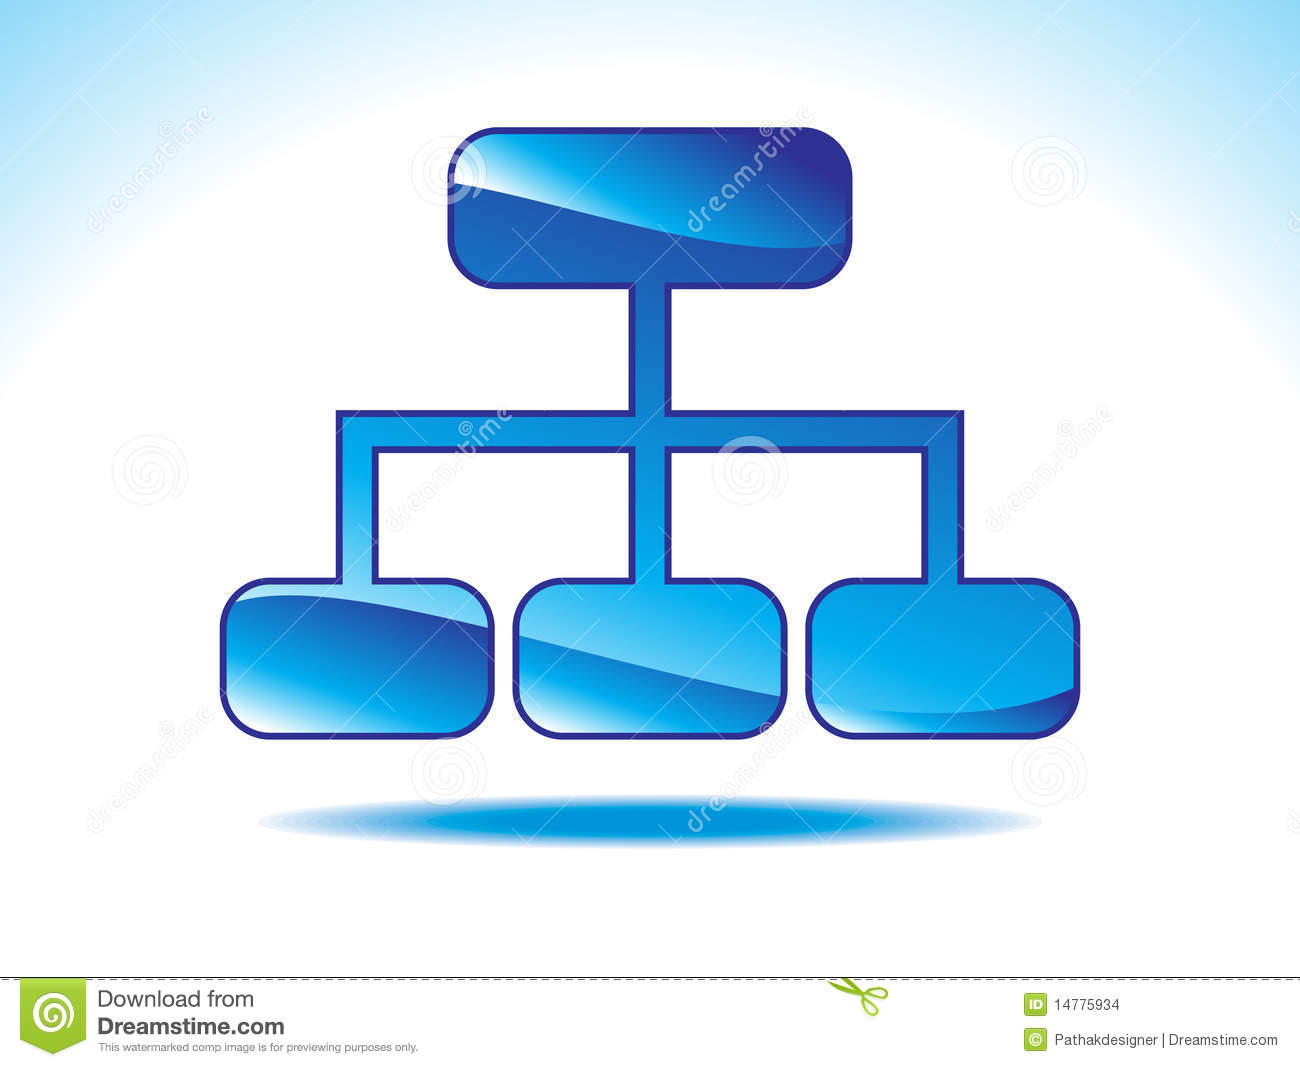 Abstract shiny blue sitemap icon